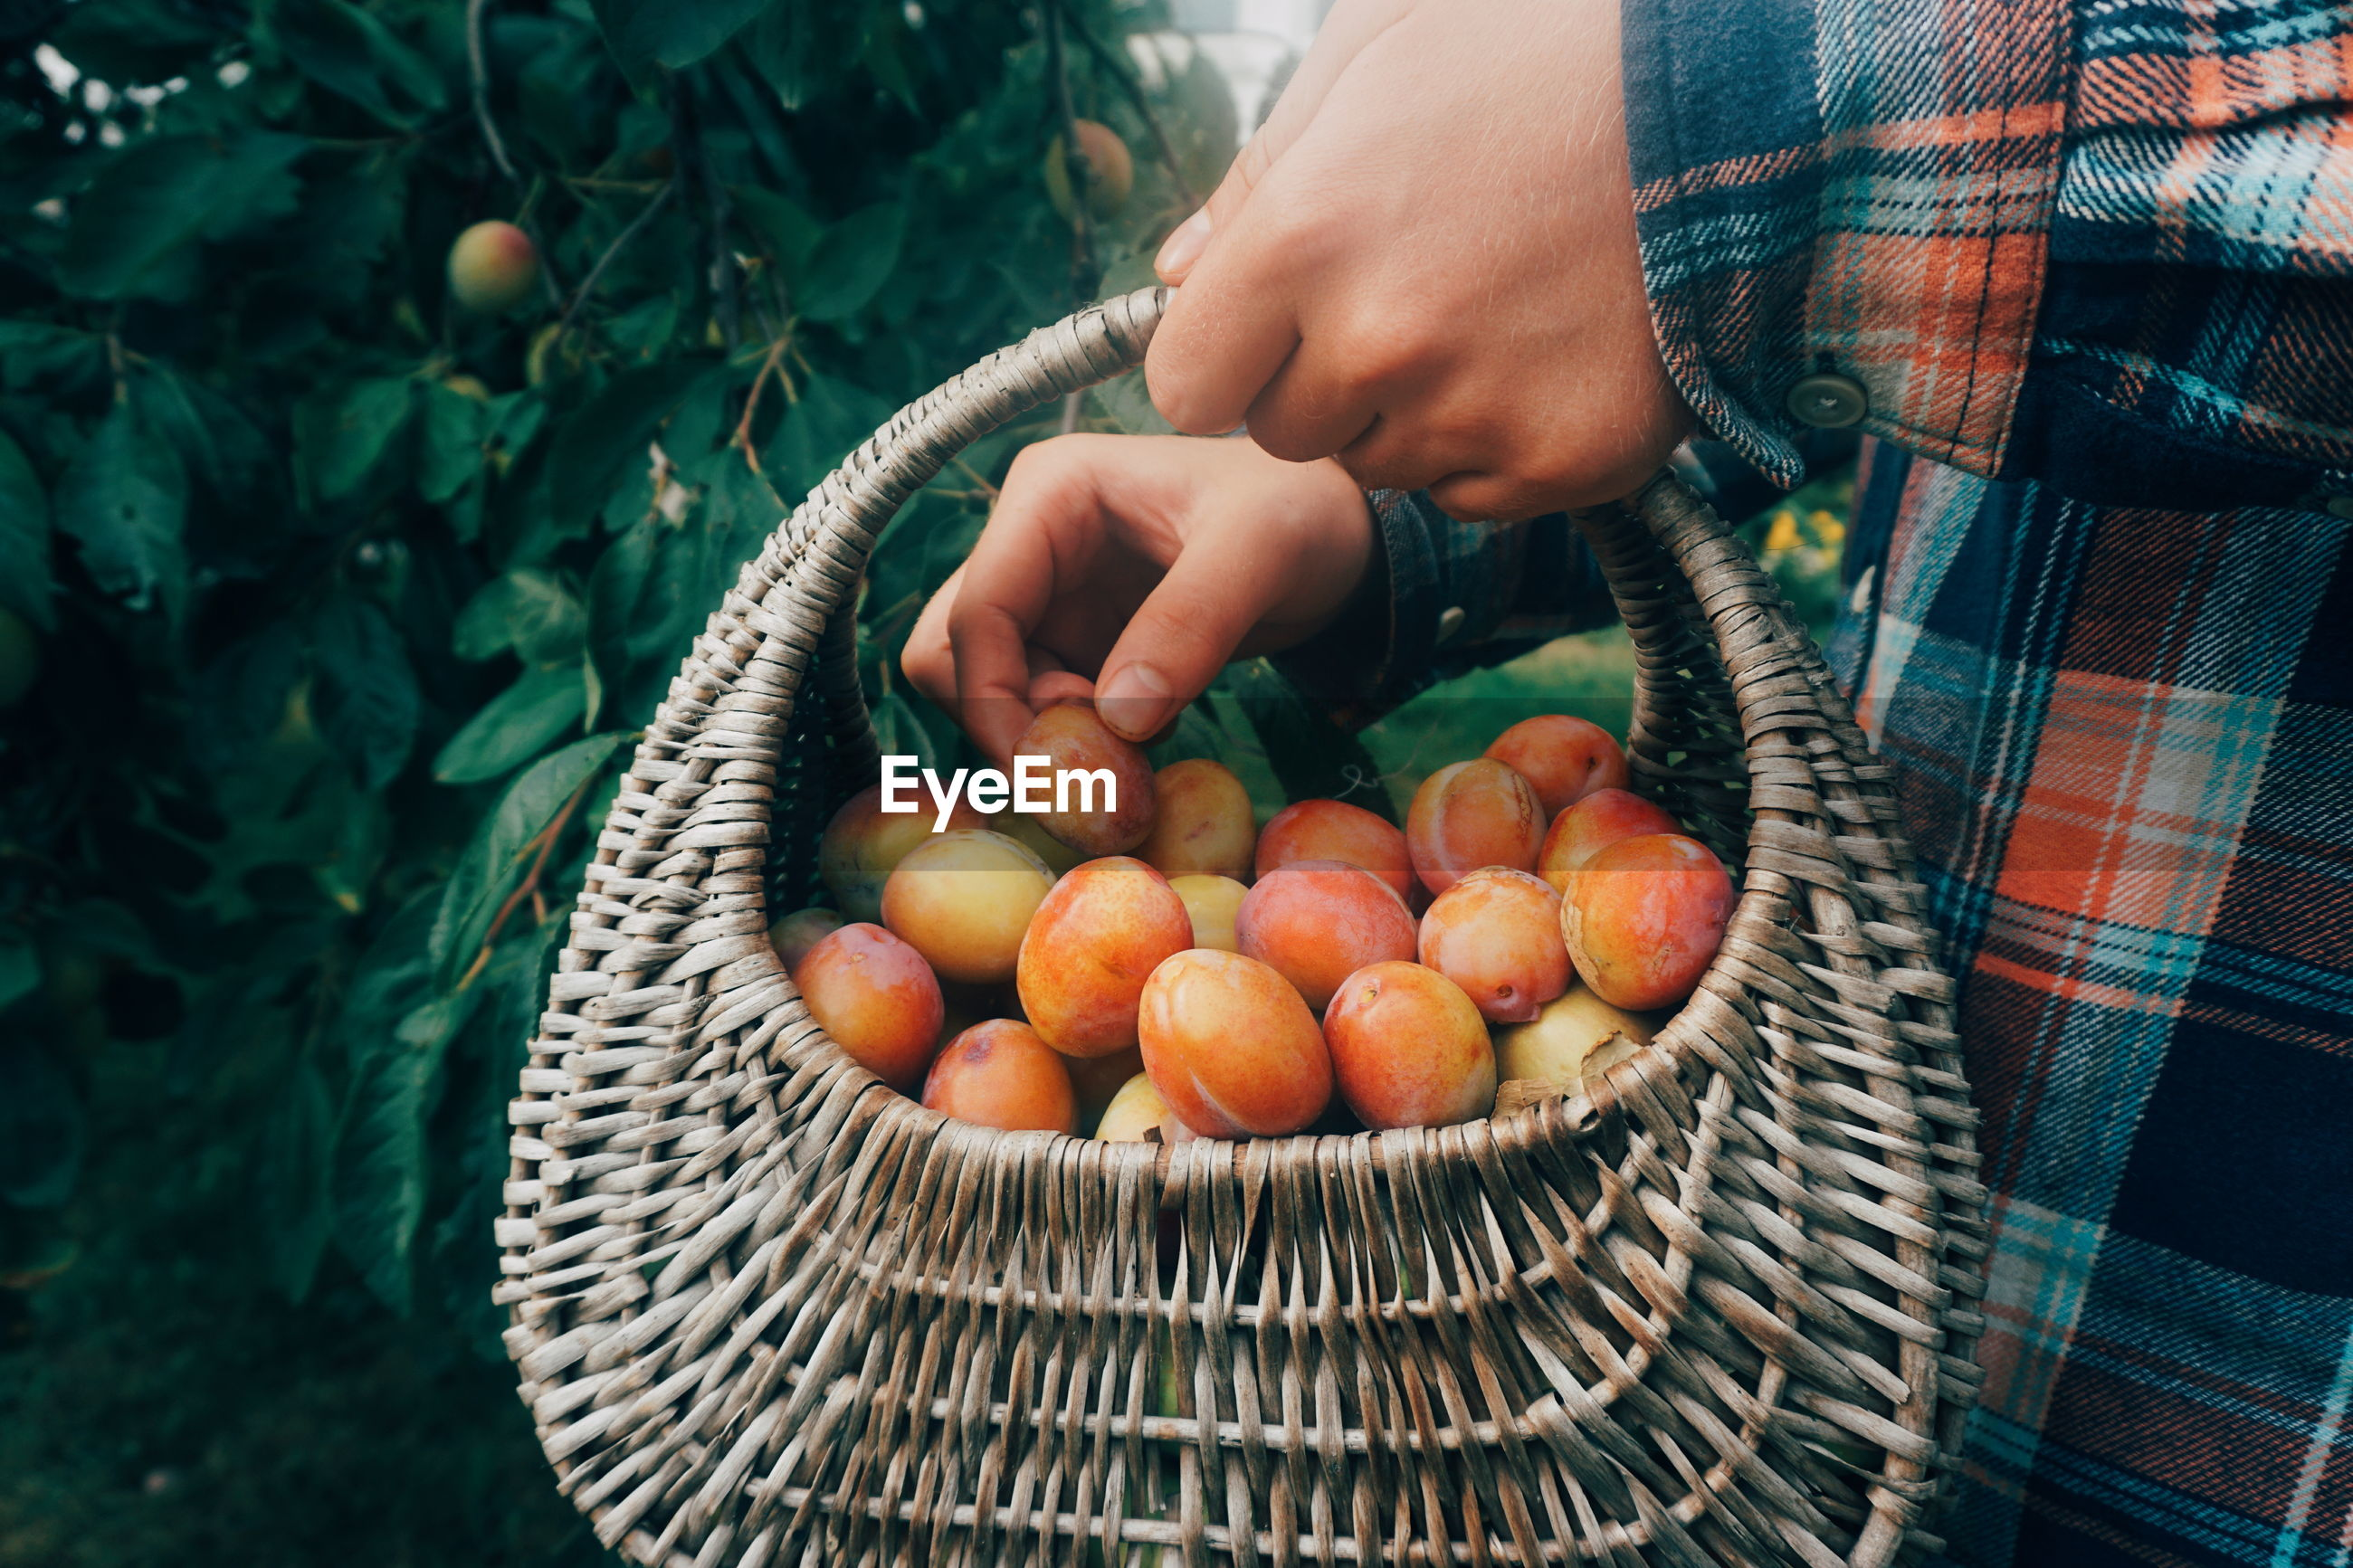 Midsection of man picking plums in basket